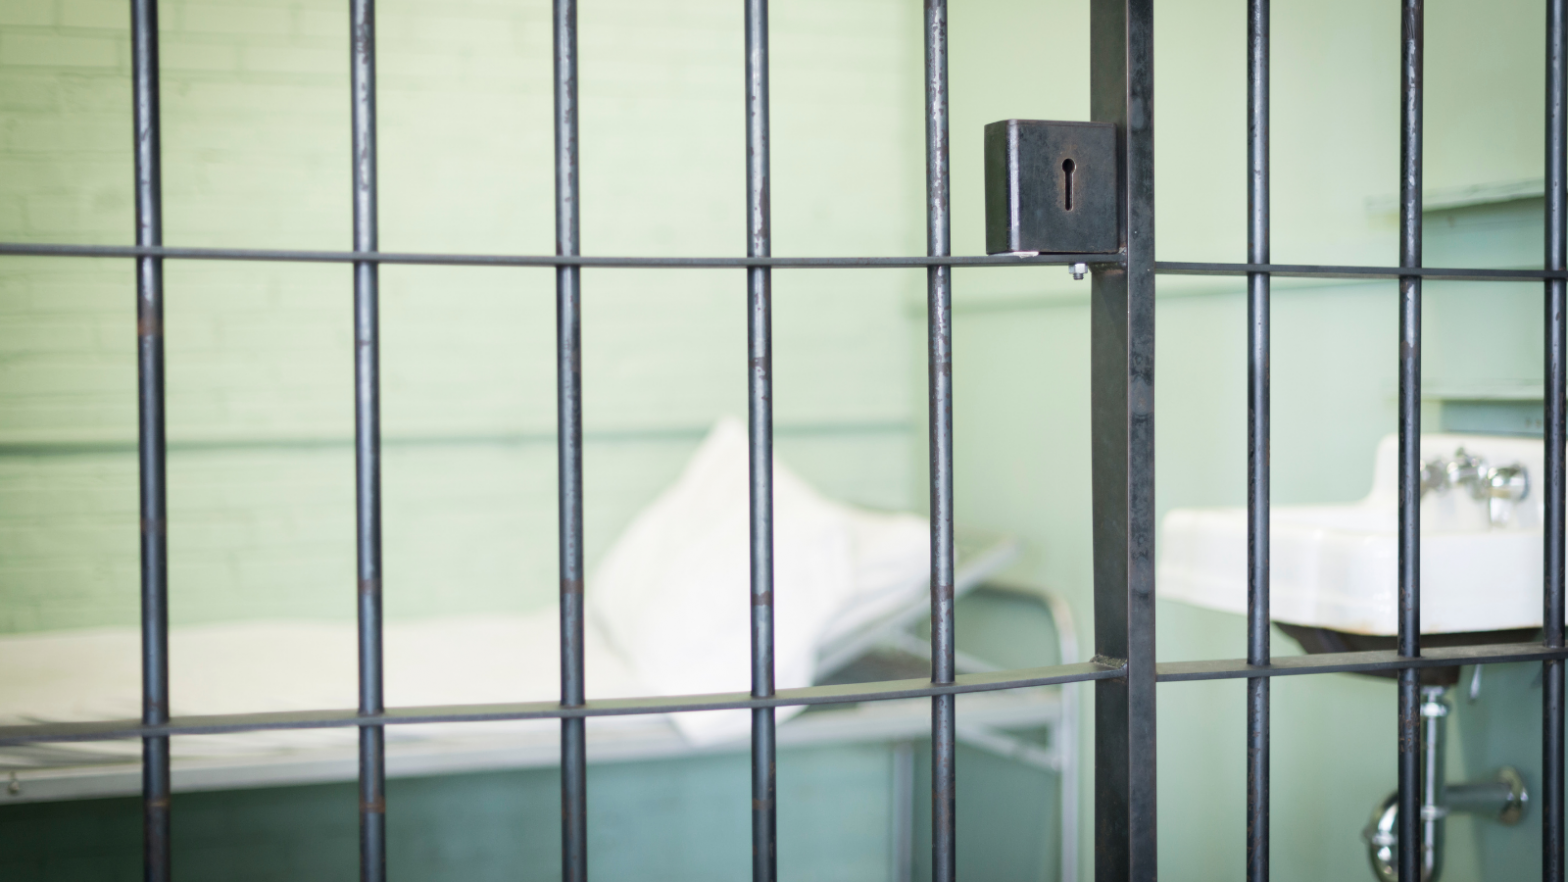 Bringing Sexual Violence Trauma-Informed Services Behind Bars: Getting a PREA Program off the Ground